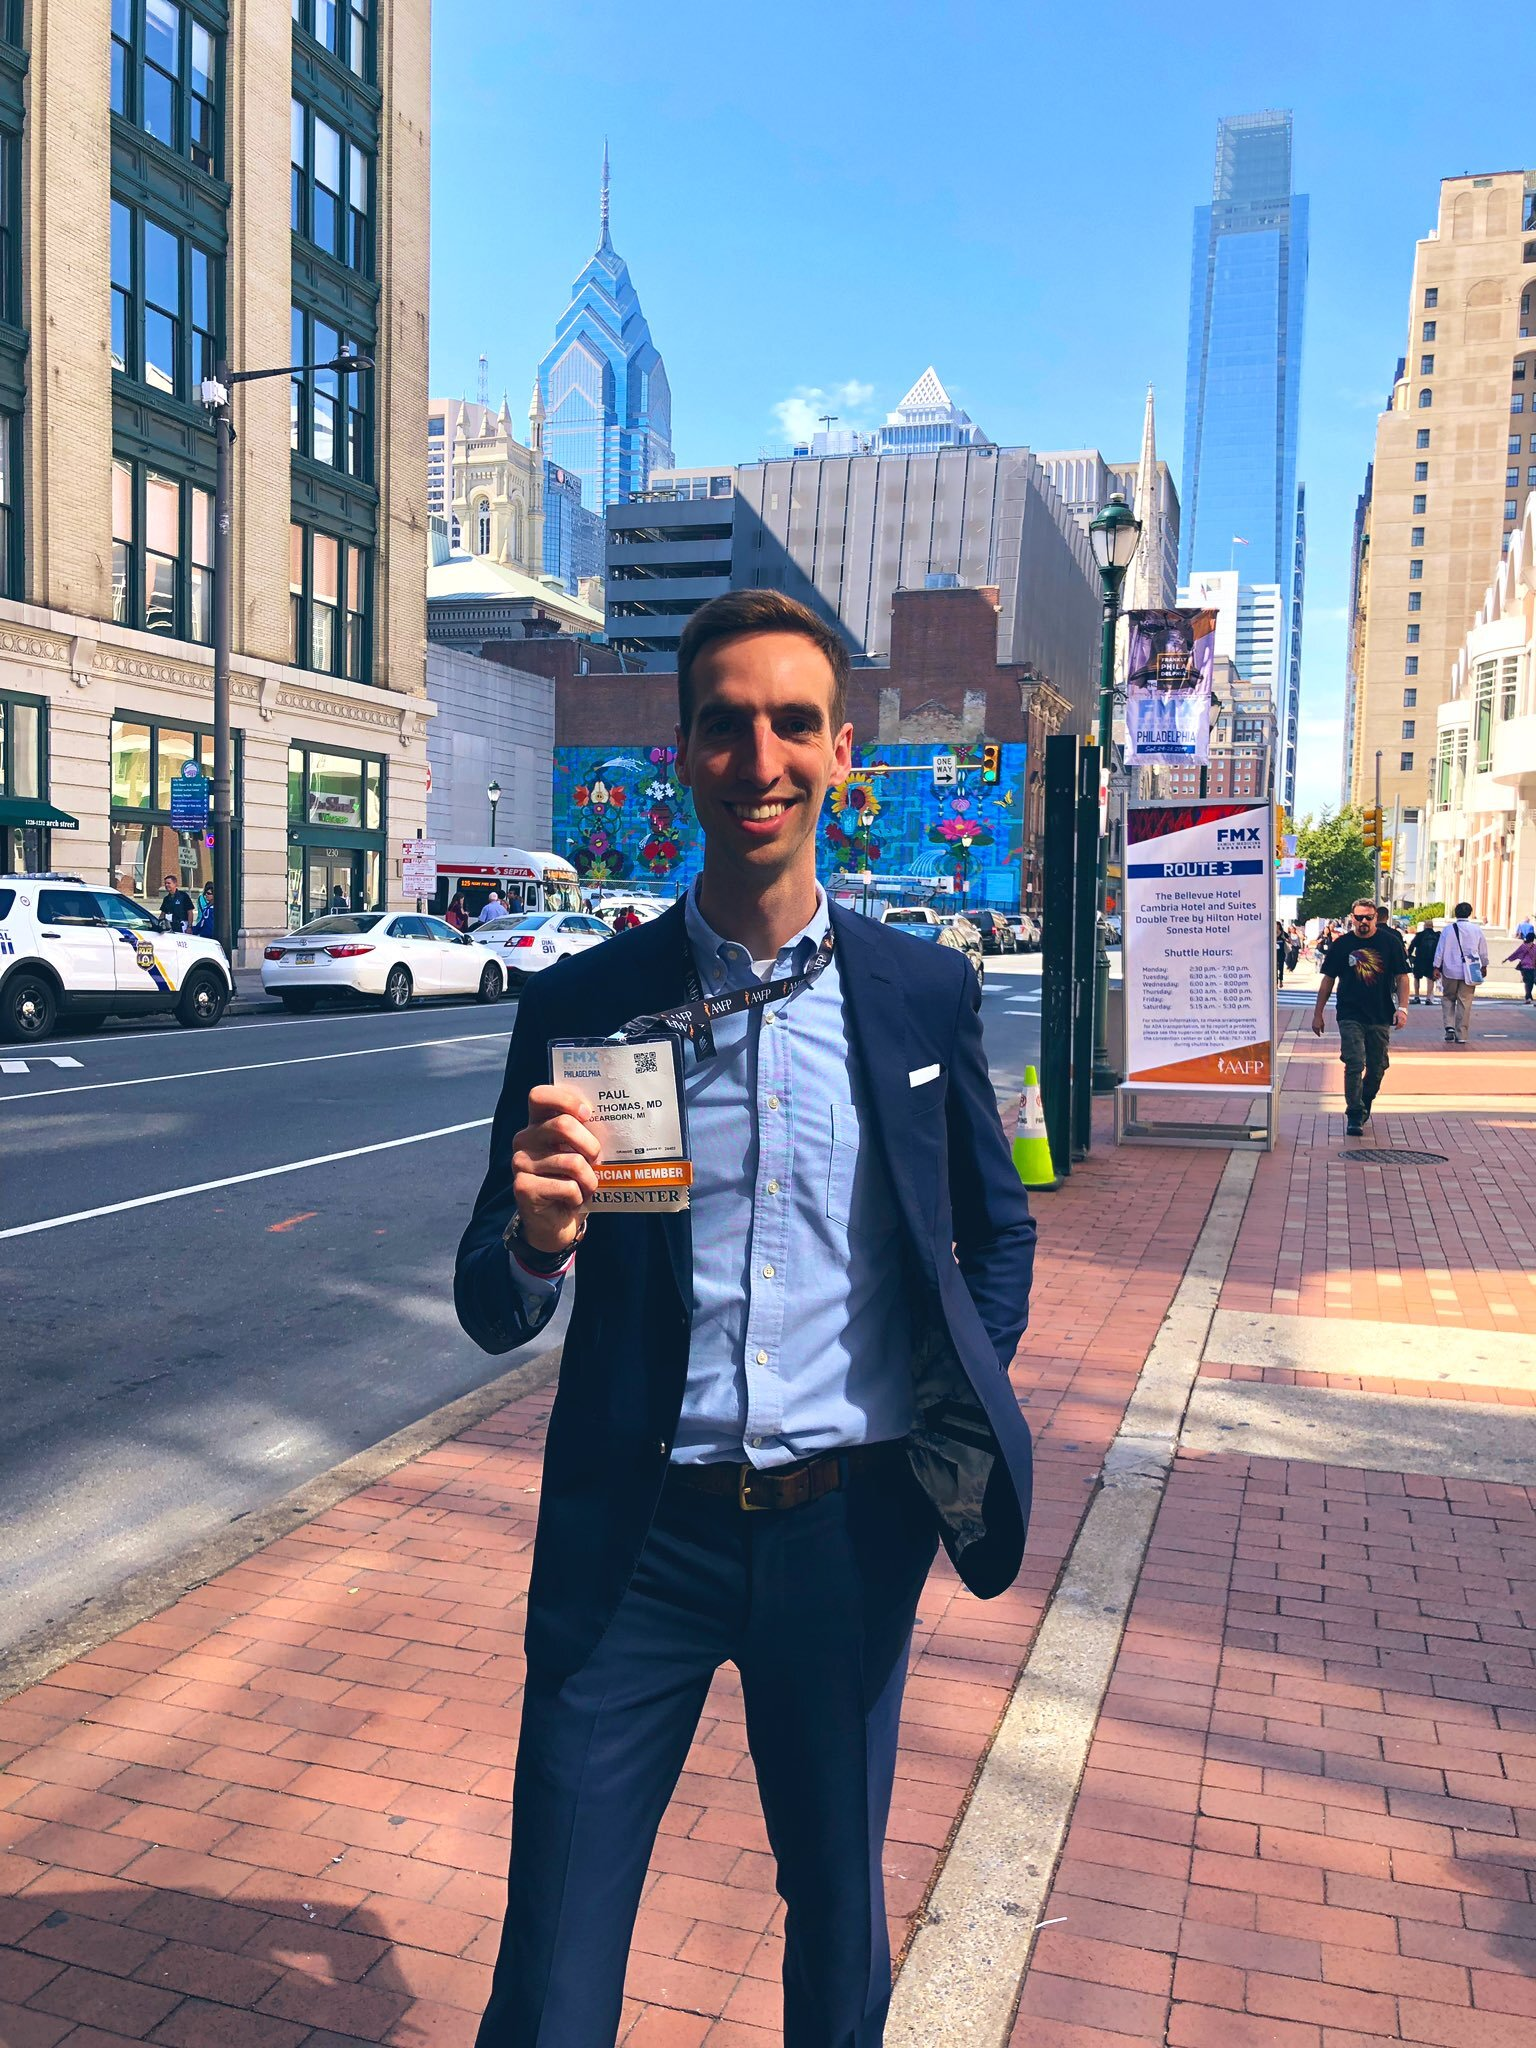 Paul Thomas MD at the AAFP FMX 2019 in Philadelphia